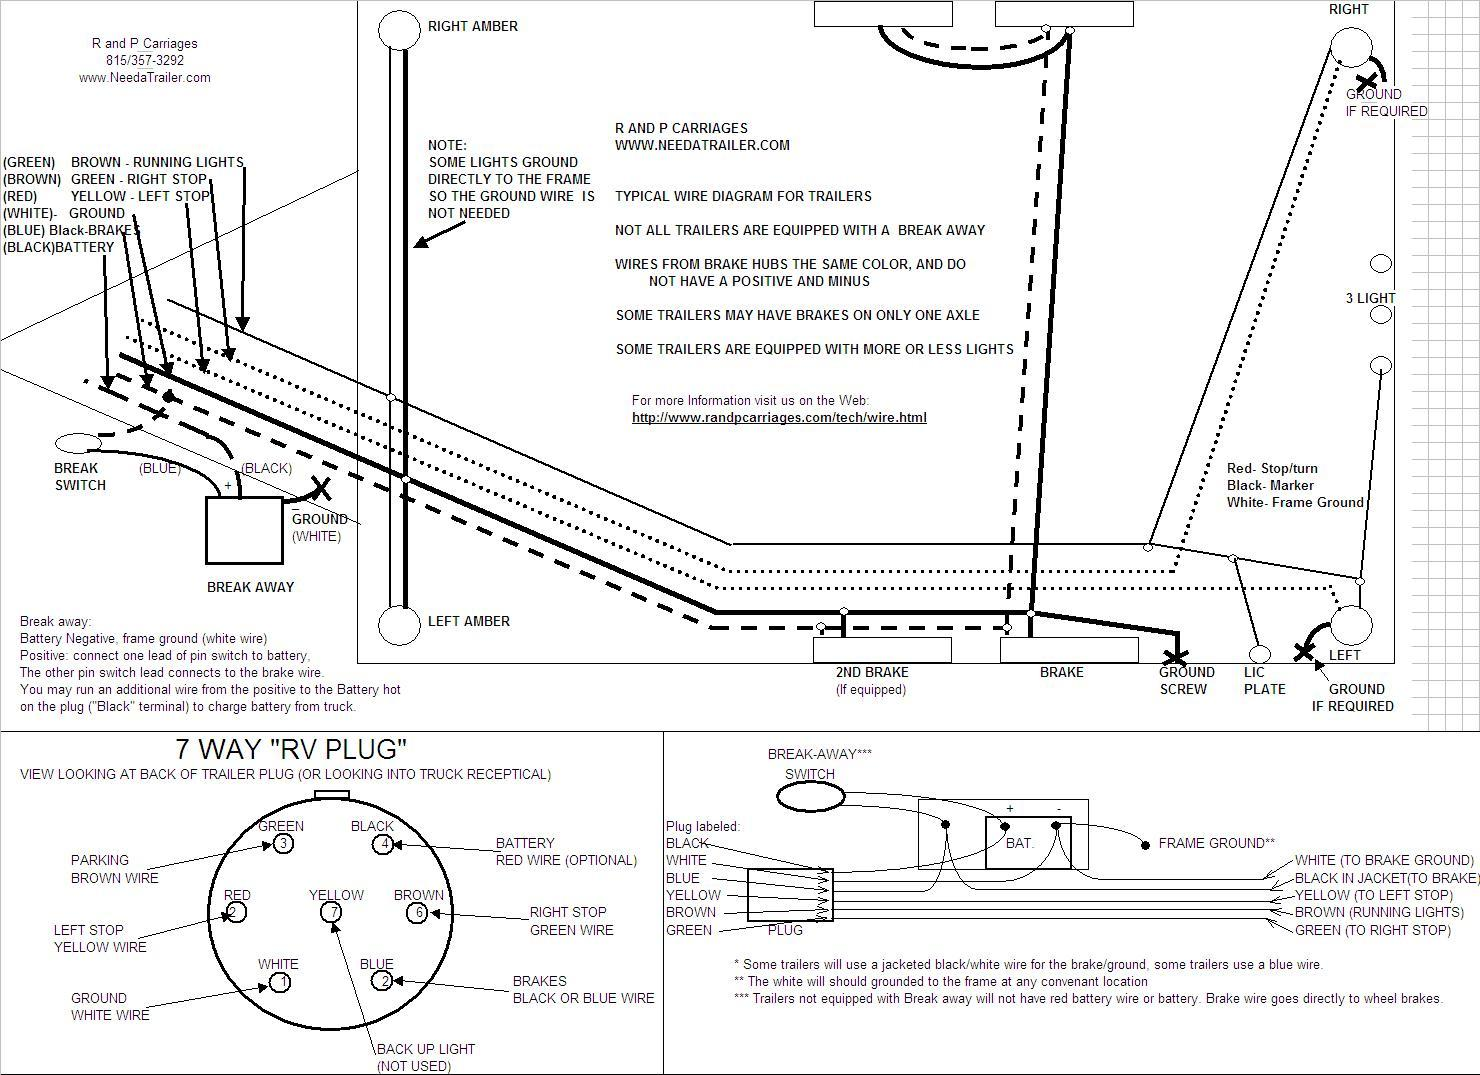 7 way wiring diagram brake controller installation instructions truck to trailer wiring diagram at gsmx.co